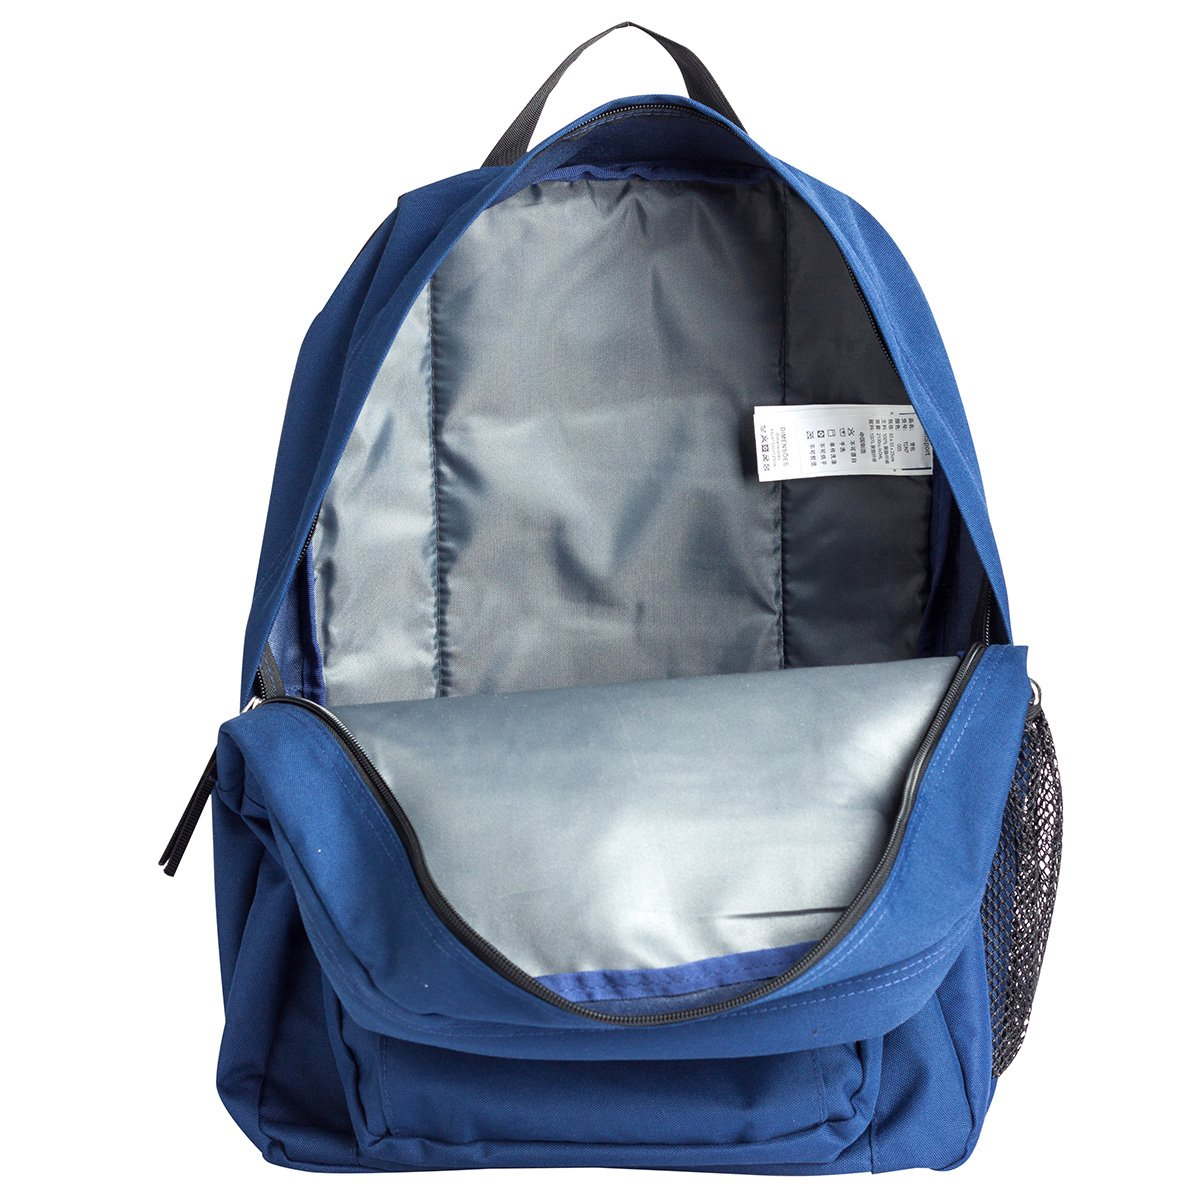 JanSport Big Student Classics Series Backpack - Navy by JanSport (Image #8)